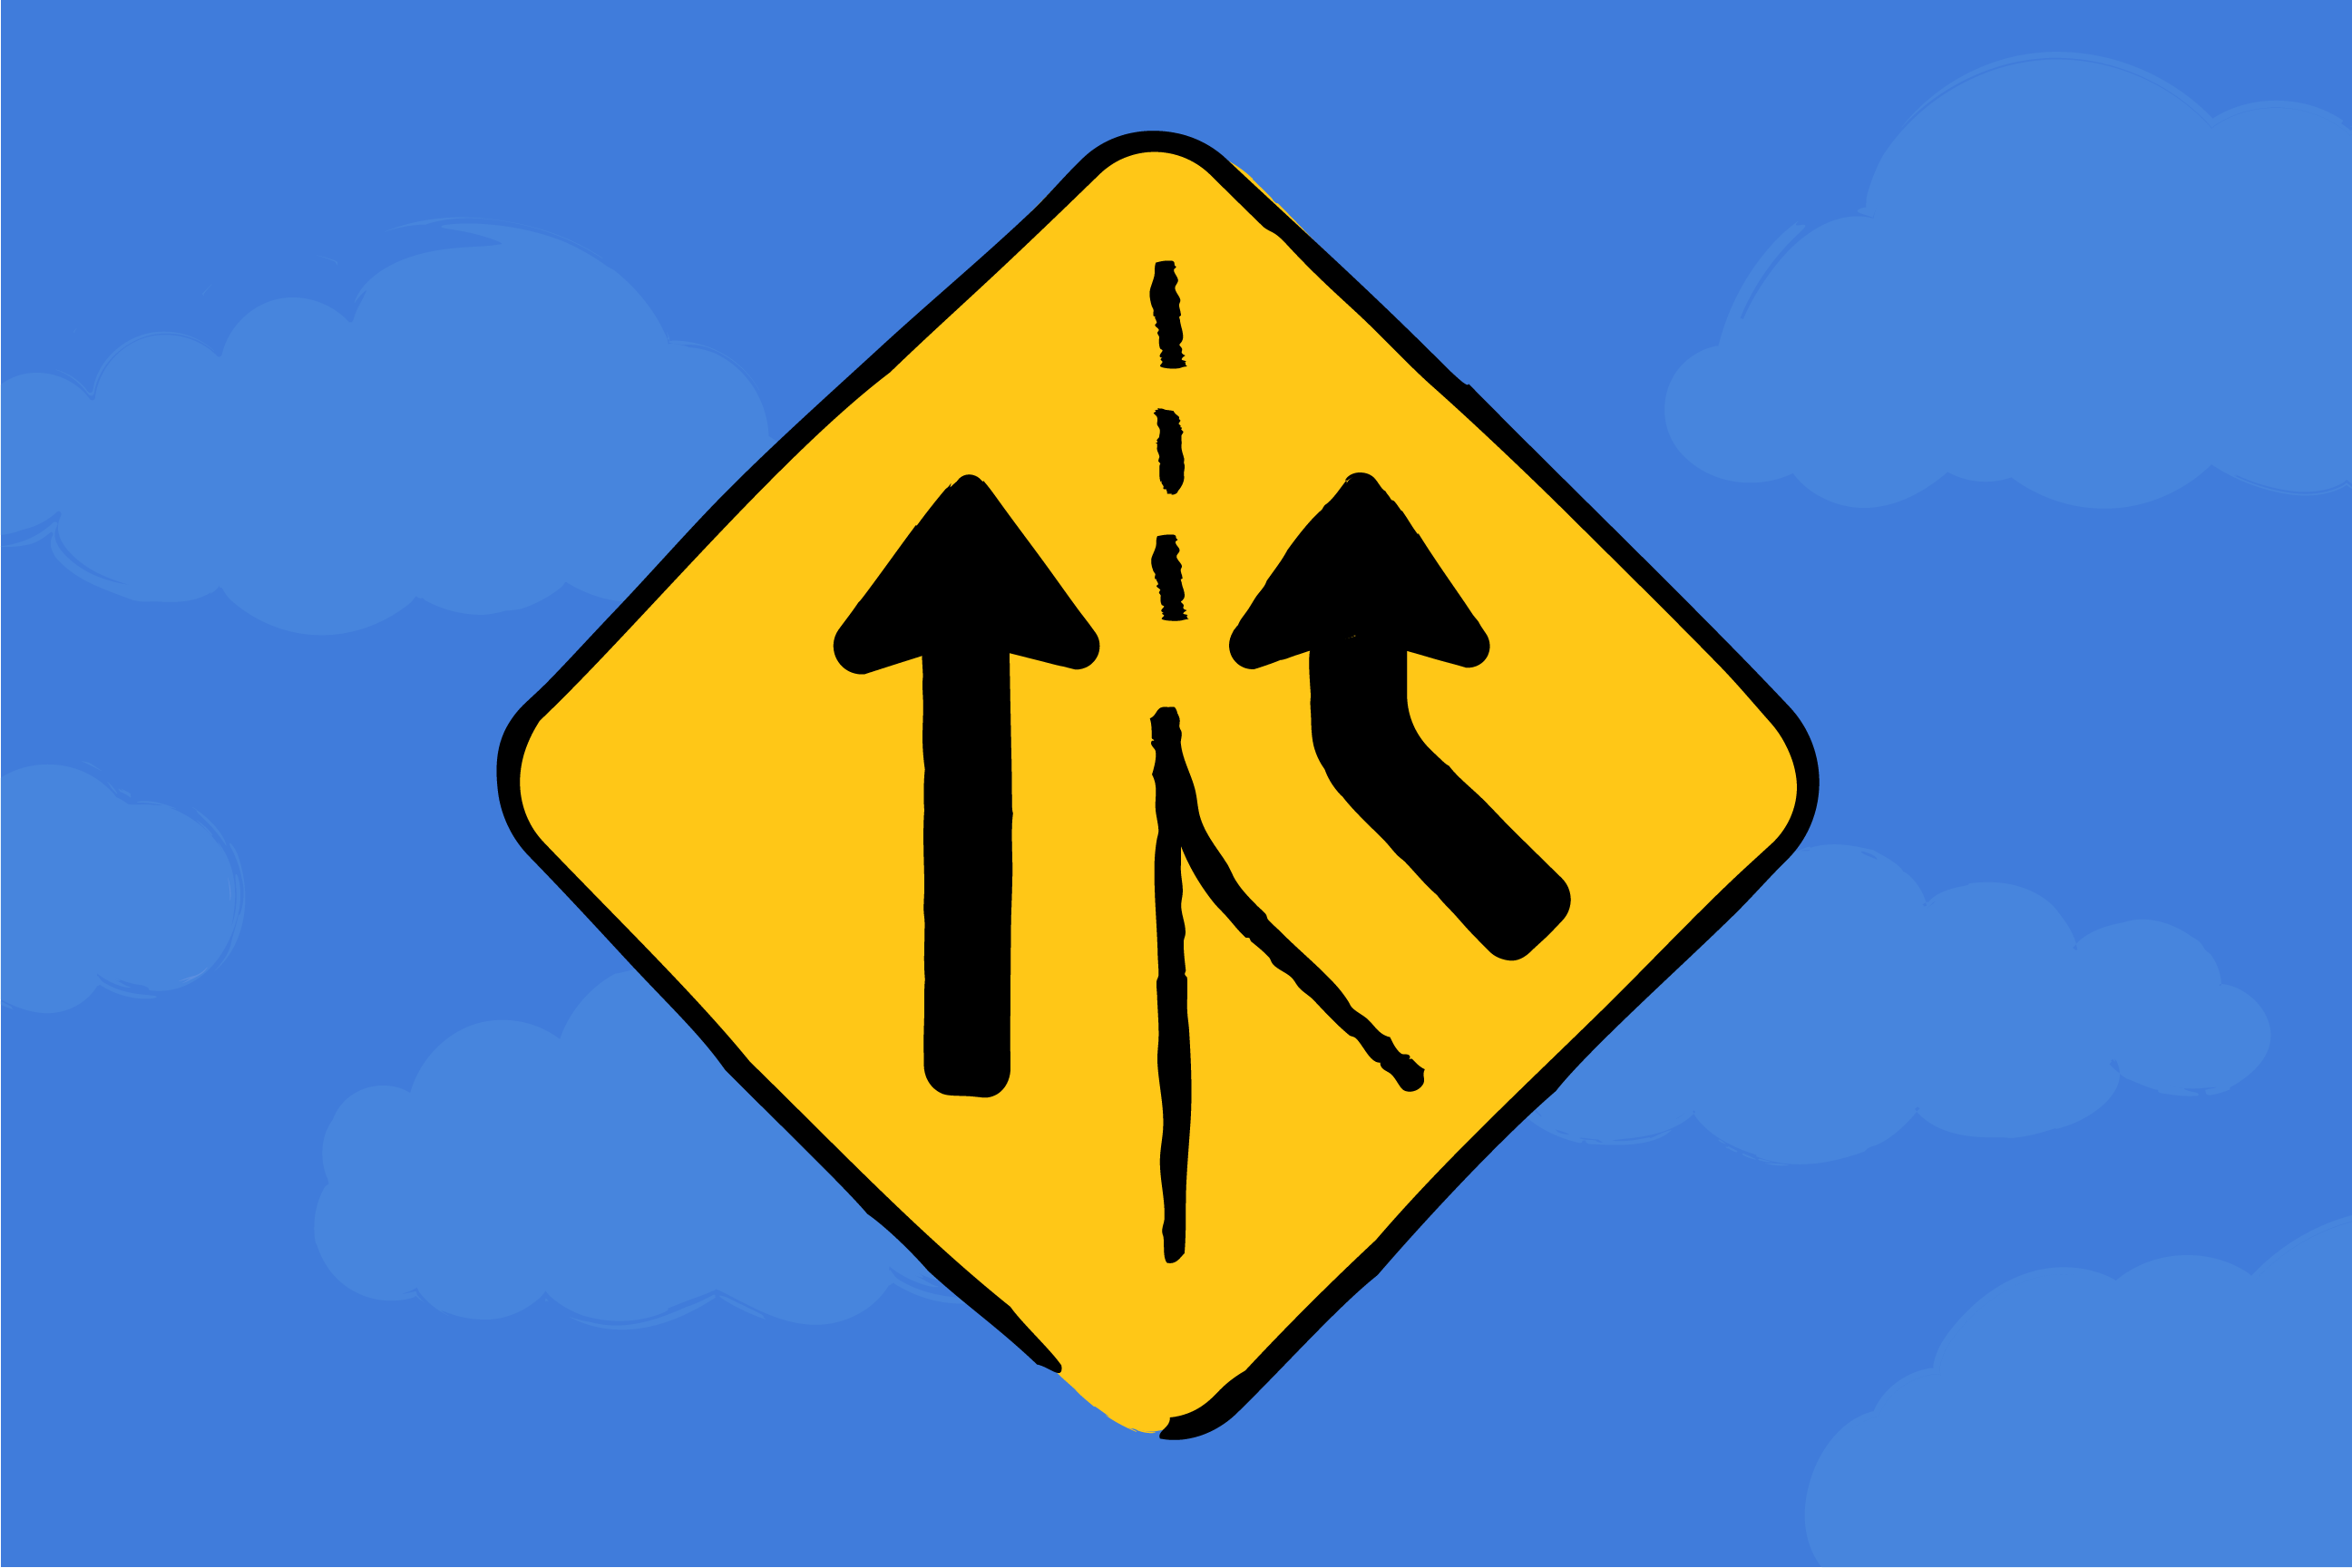 Illustration of a merge traffic sign